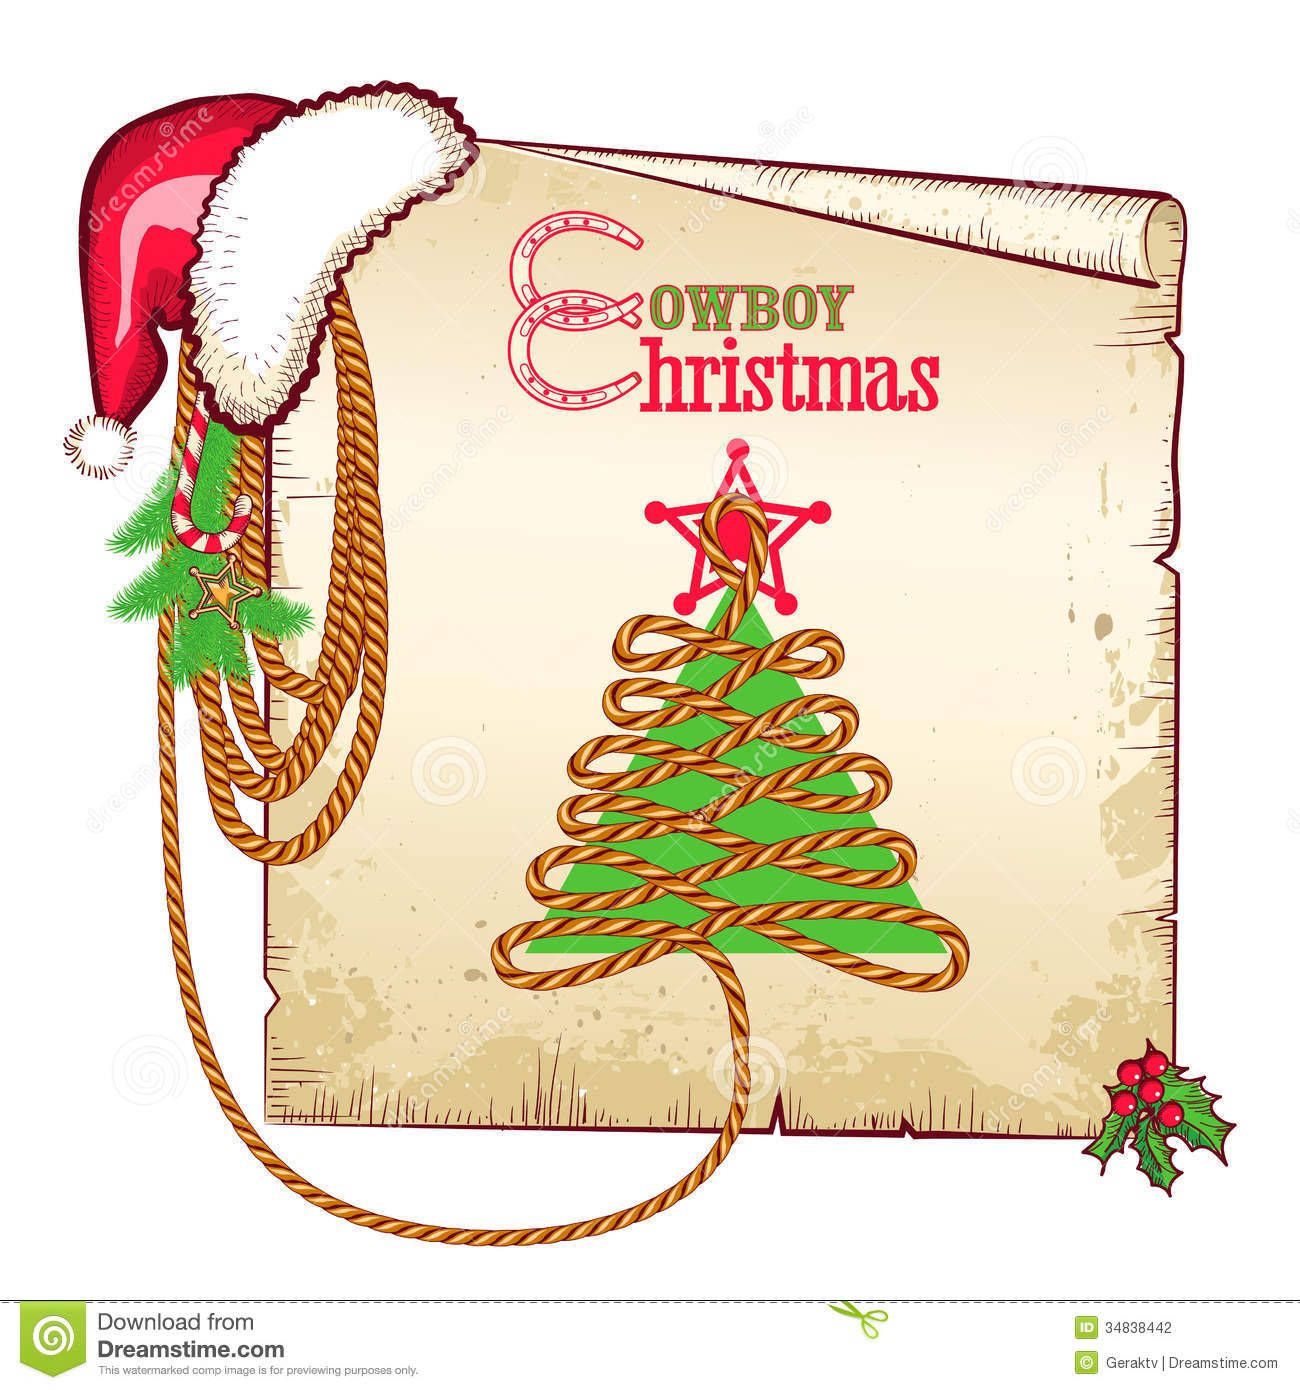 Western clipart christmas tree Clipart Western cps Christmas China